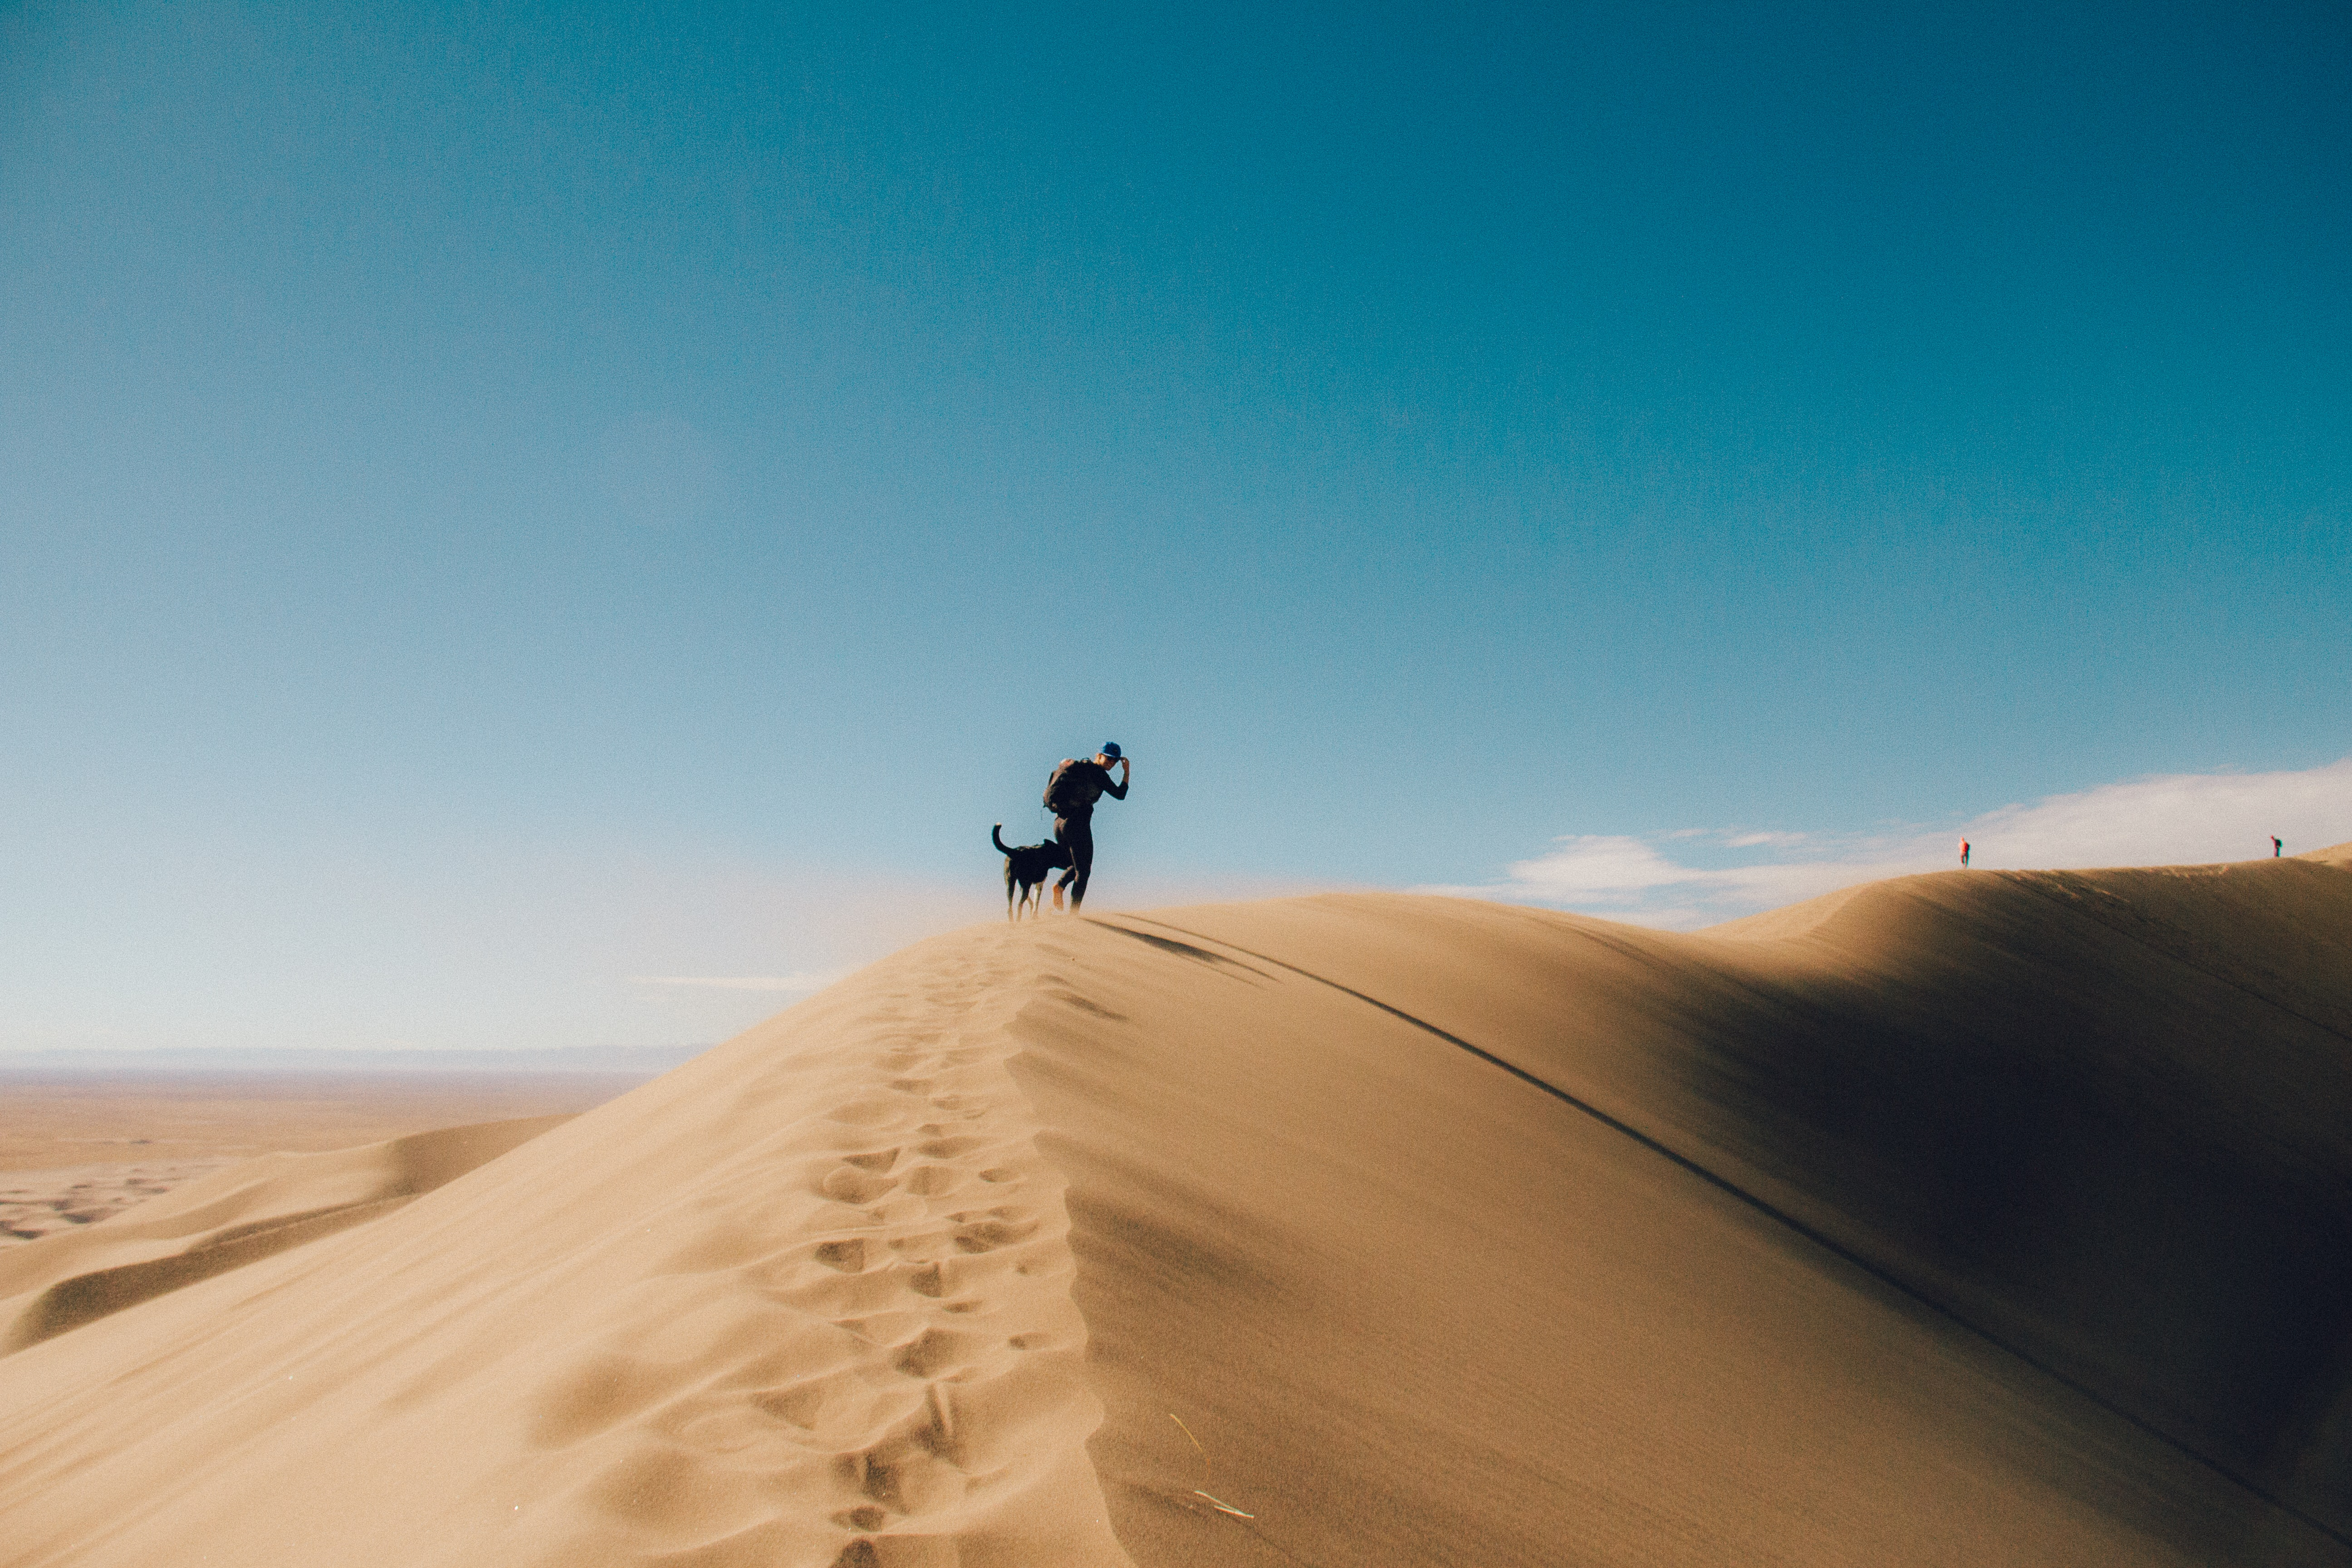 silhouette photo of person and dog on desert mountain